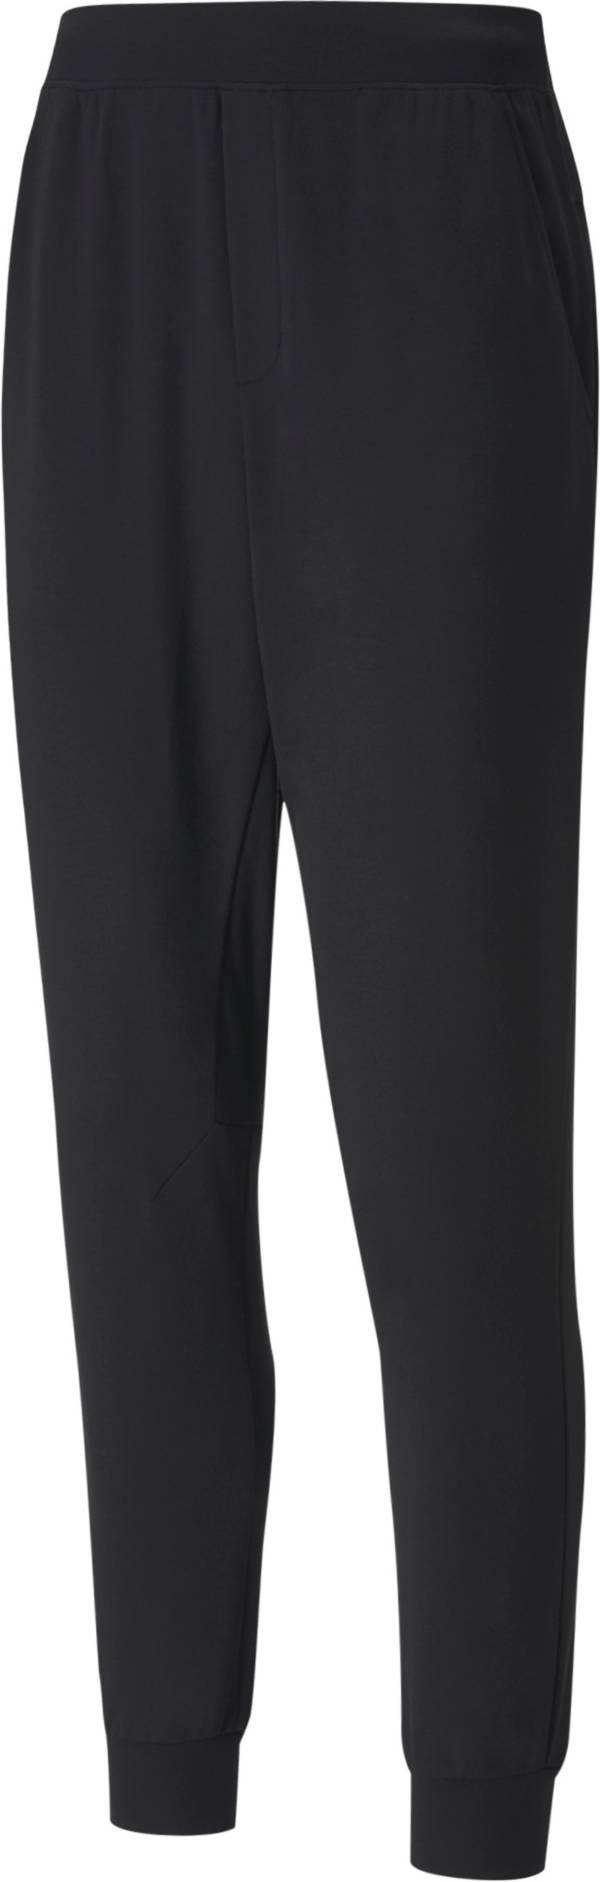 PUMA Men's Tarmac Jogger Golf Pants product image